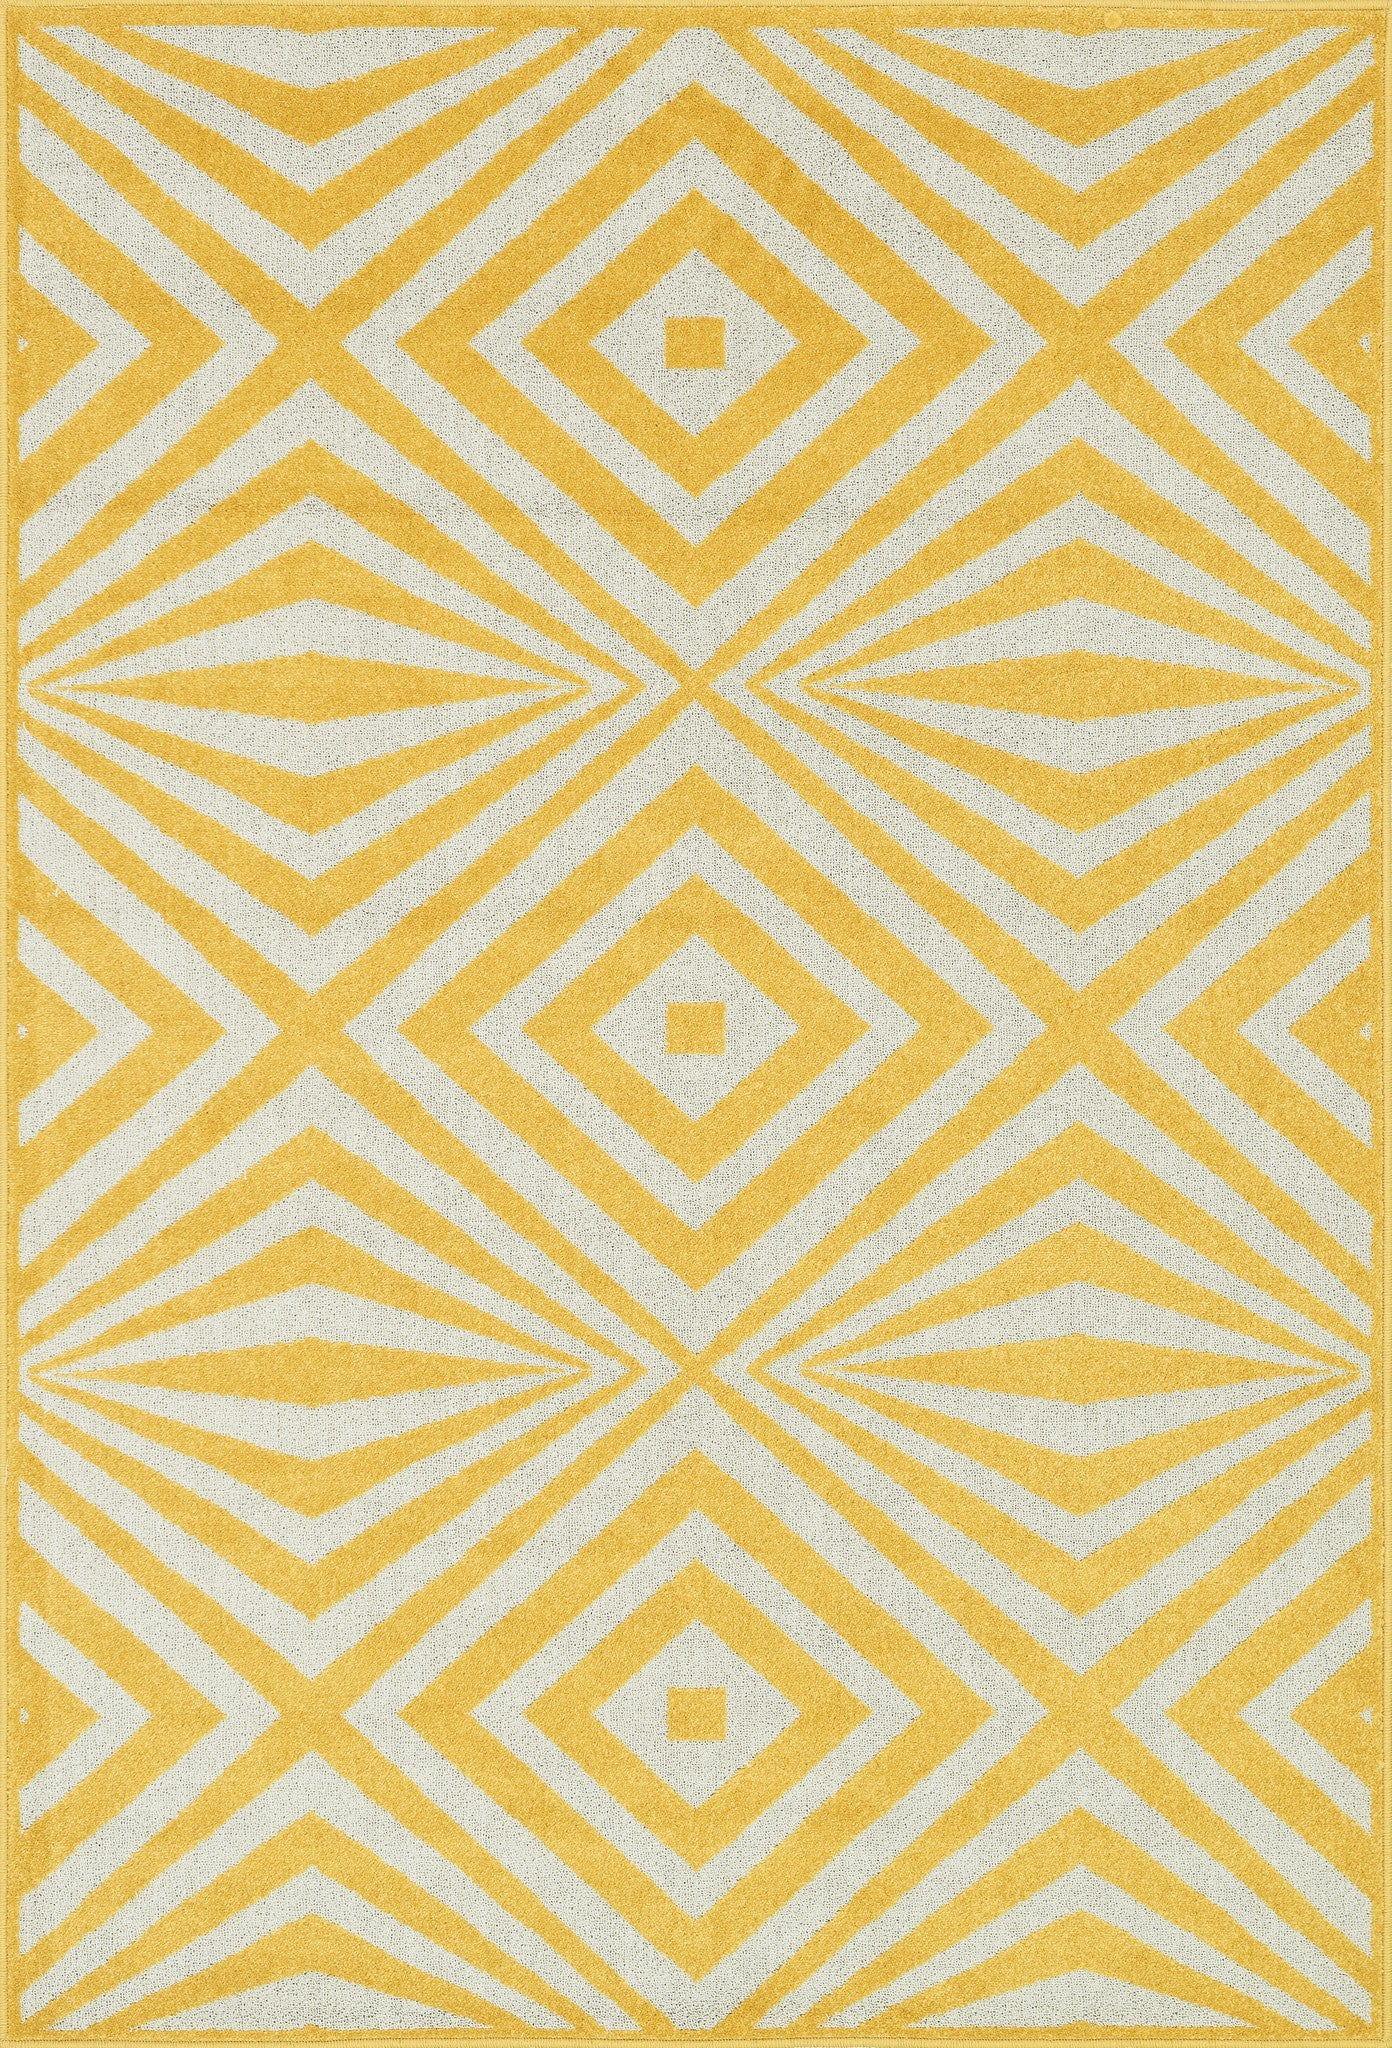 Loloi Catalina HCF04 Lemon / Ivory Area Rug main image